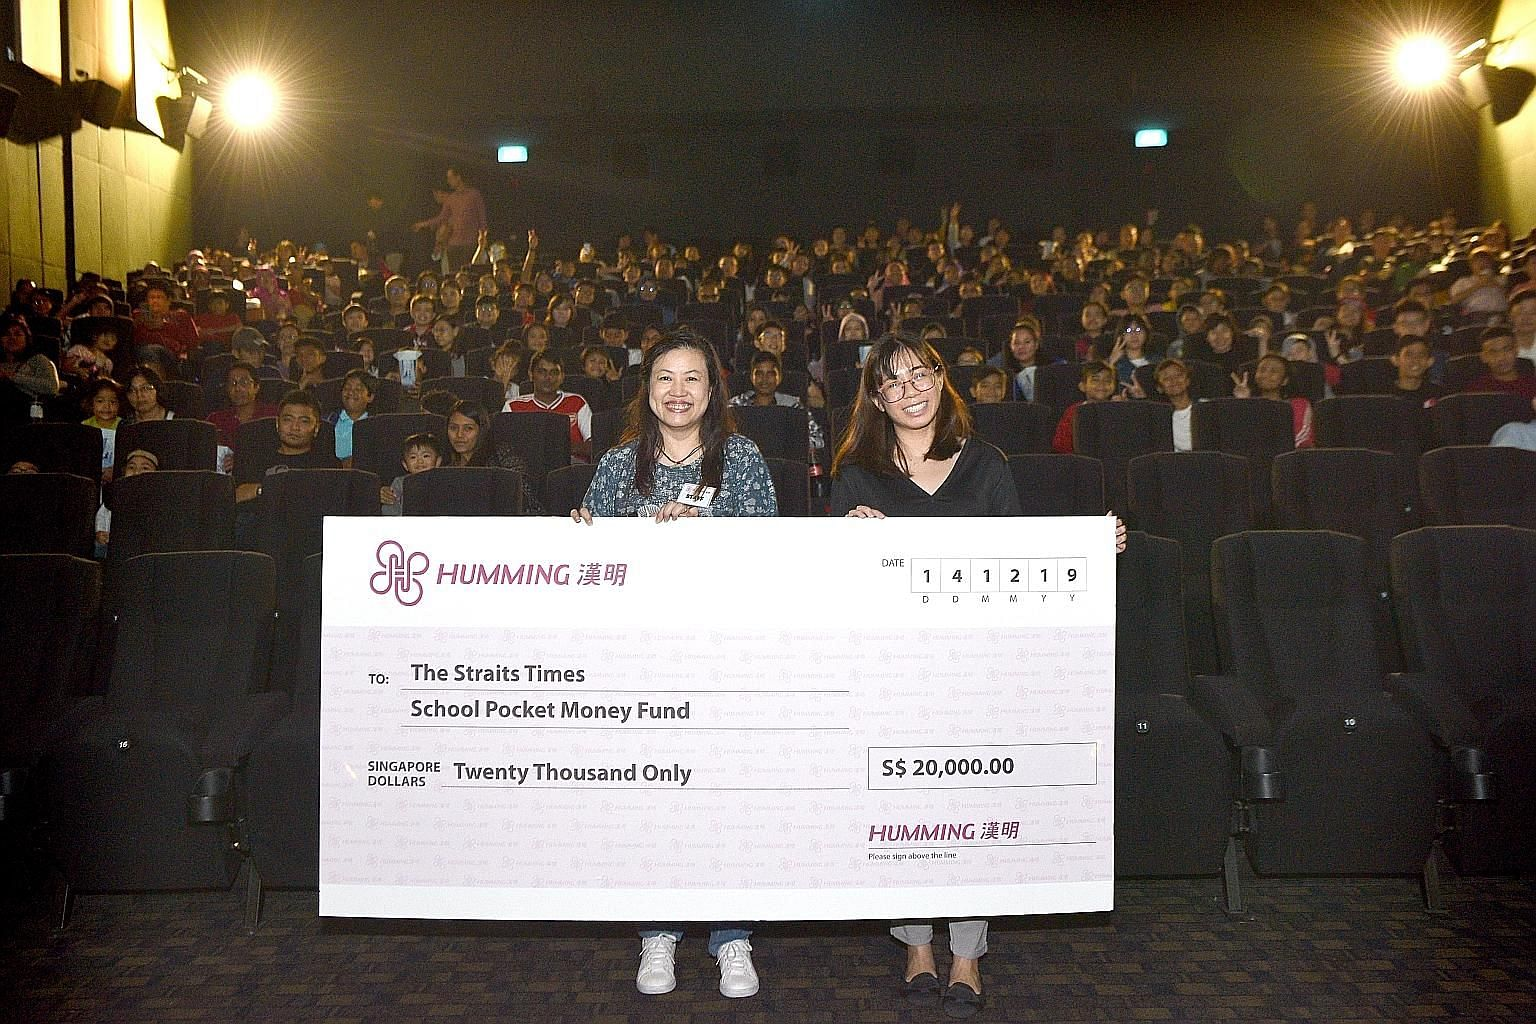 Humming Flowers and Gifts general manager Bernadette Kwan and The Straits Times School Pocket Money Fund operations executive Ho Jia Yan with the $20,000 cheque donated to the fund.